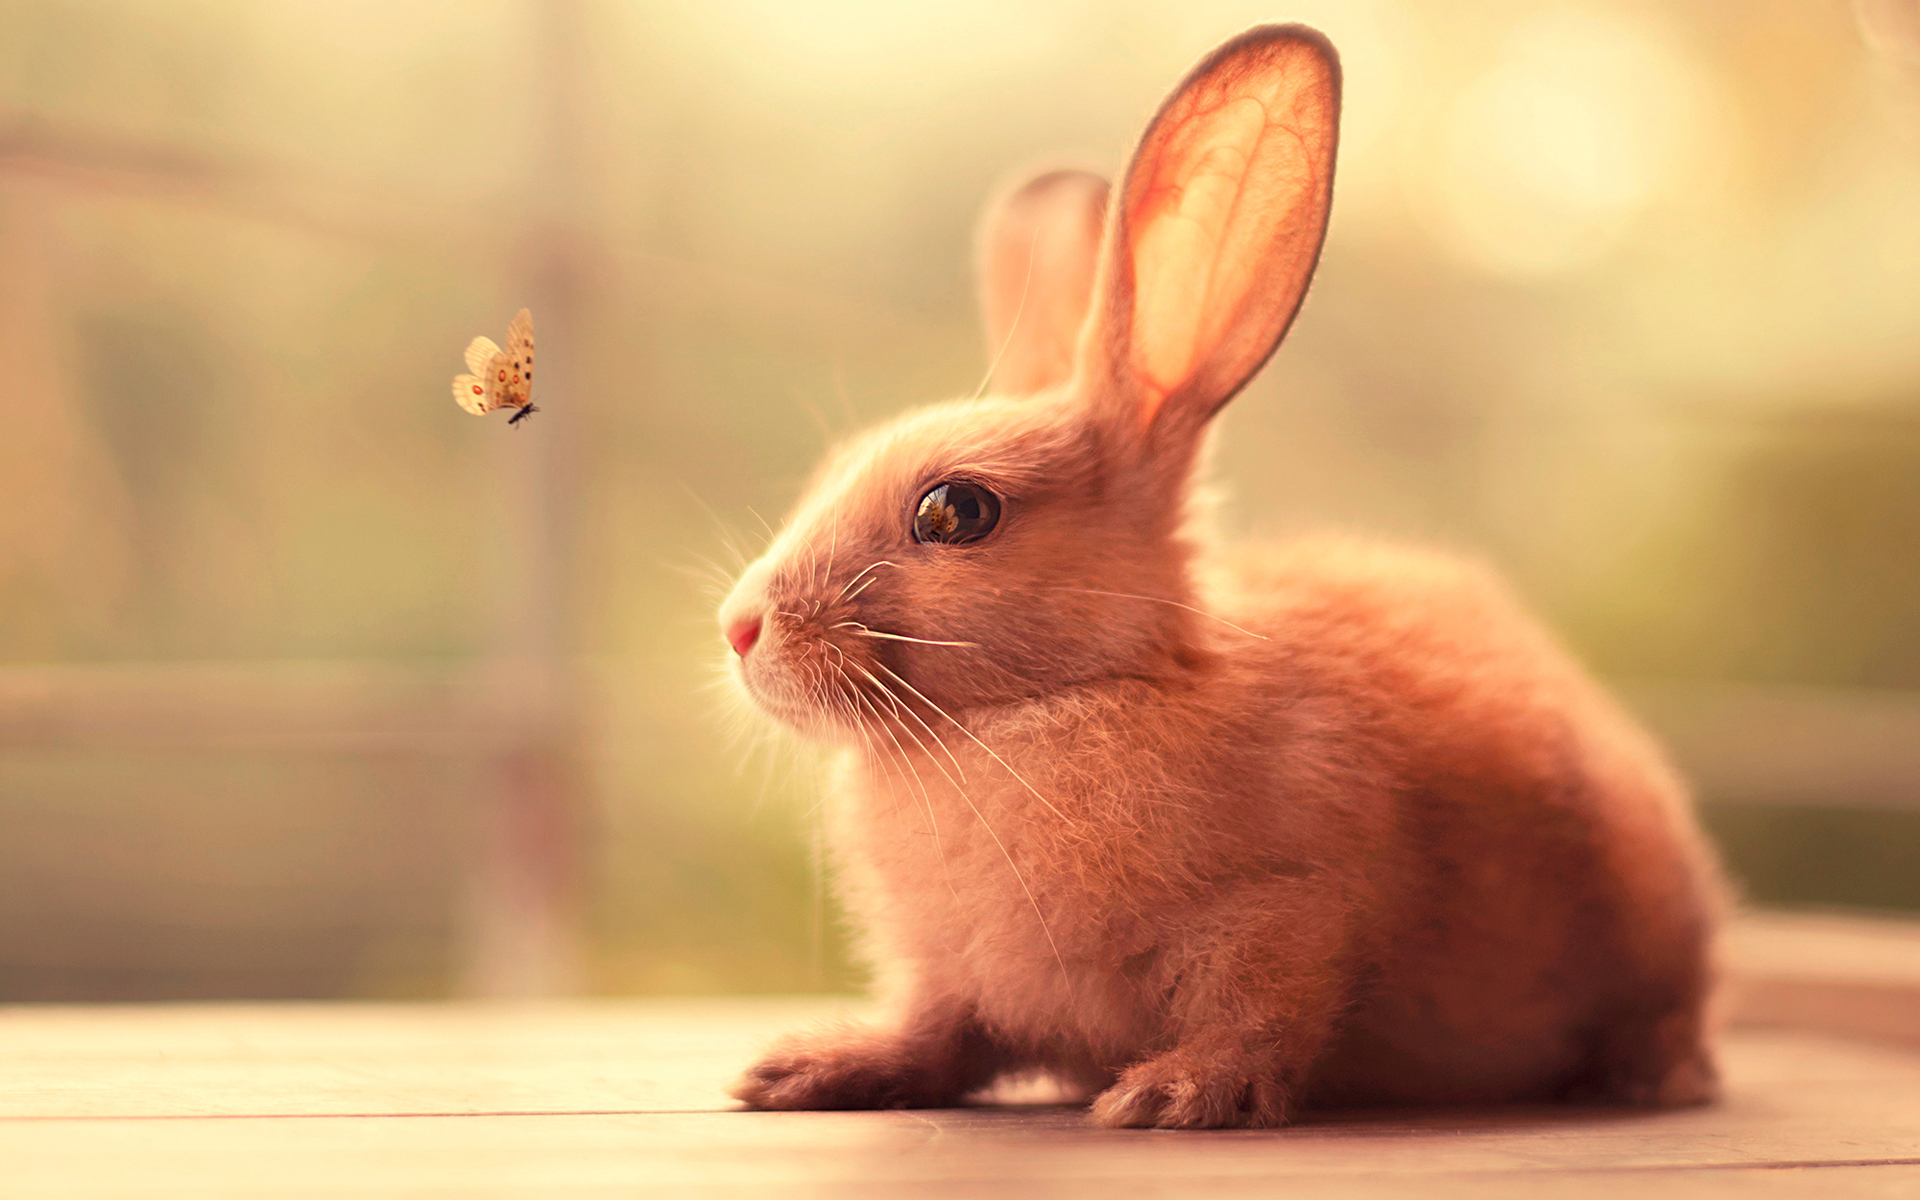 Bunny Cute, HD Animals, 4k Wallpapers, Images, Backgrounds